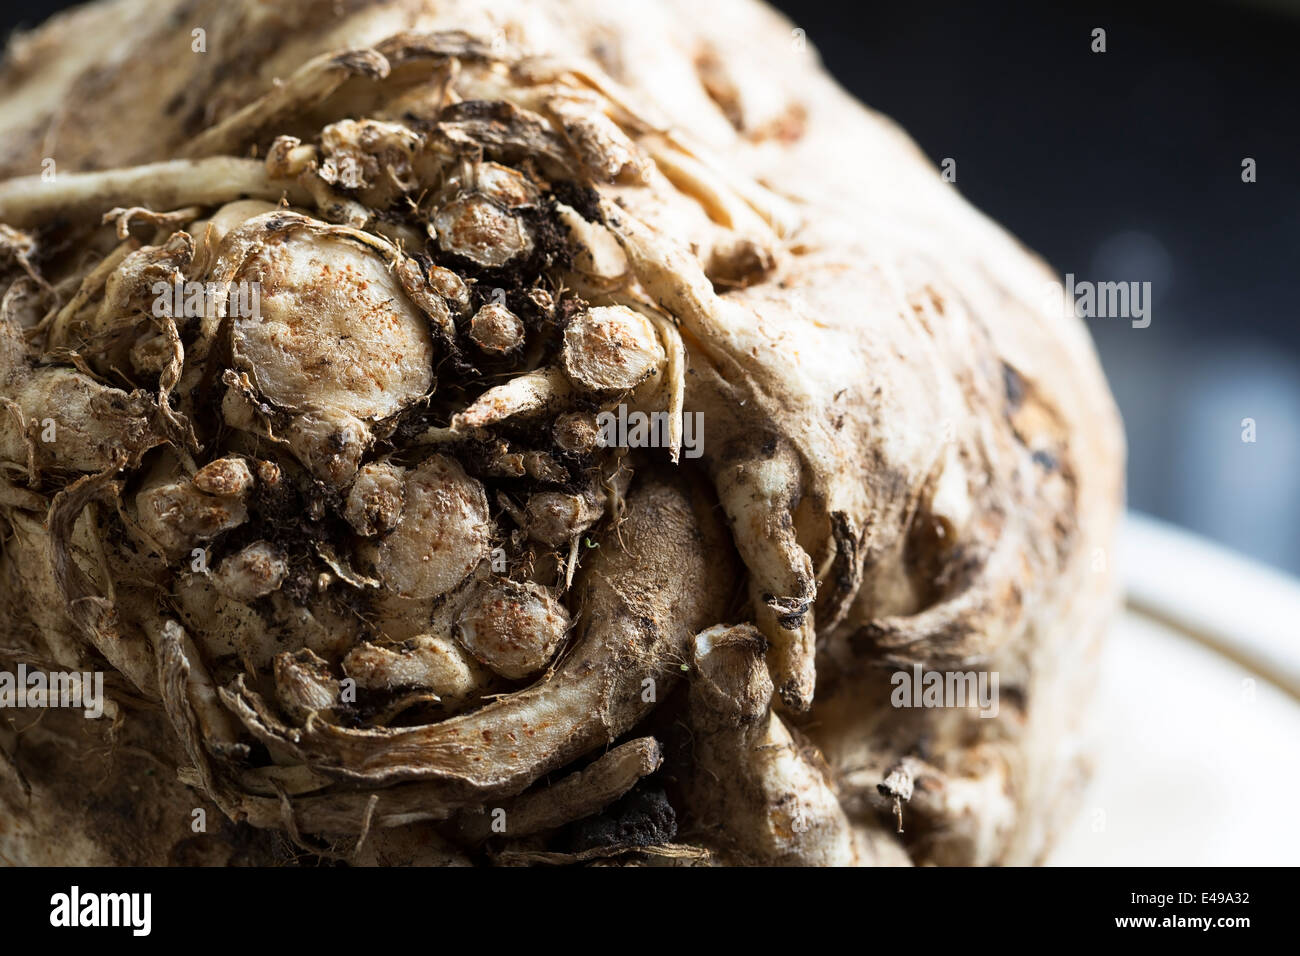 Celeriac, root vegetable recently harvested. - Stock Image